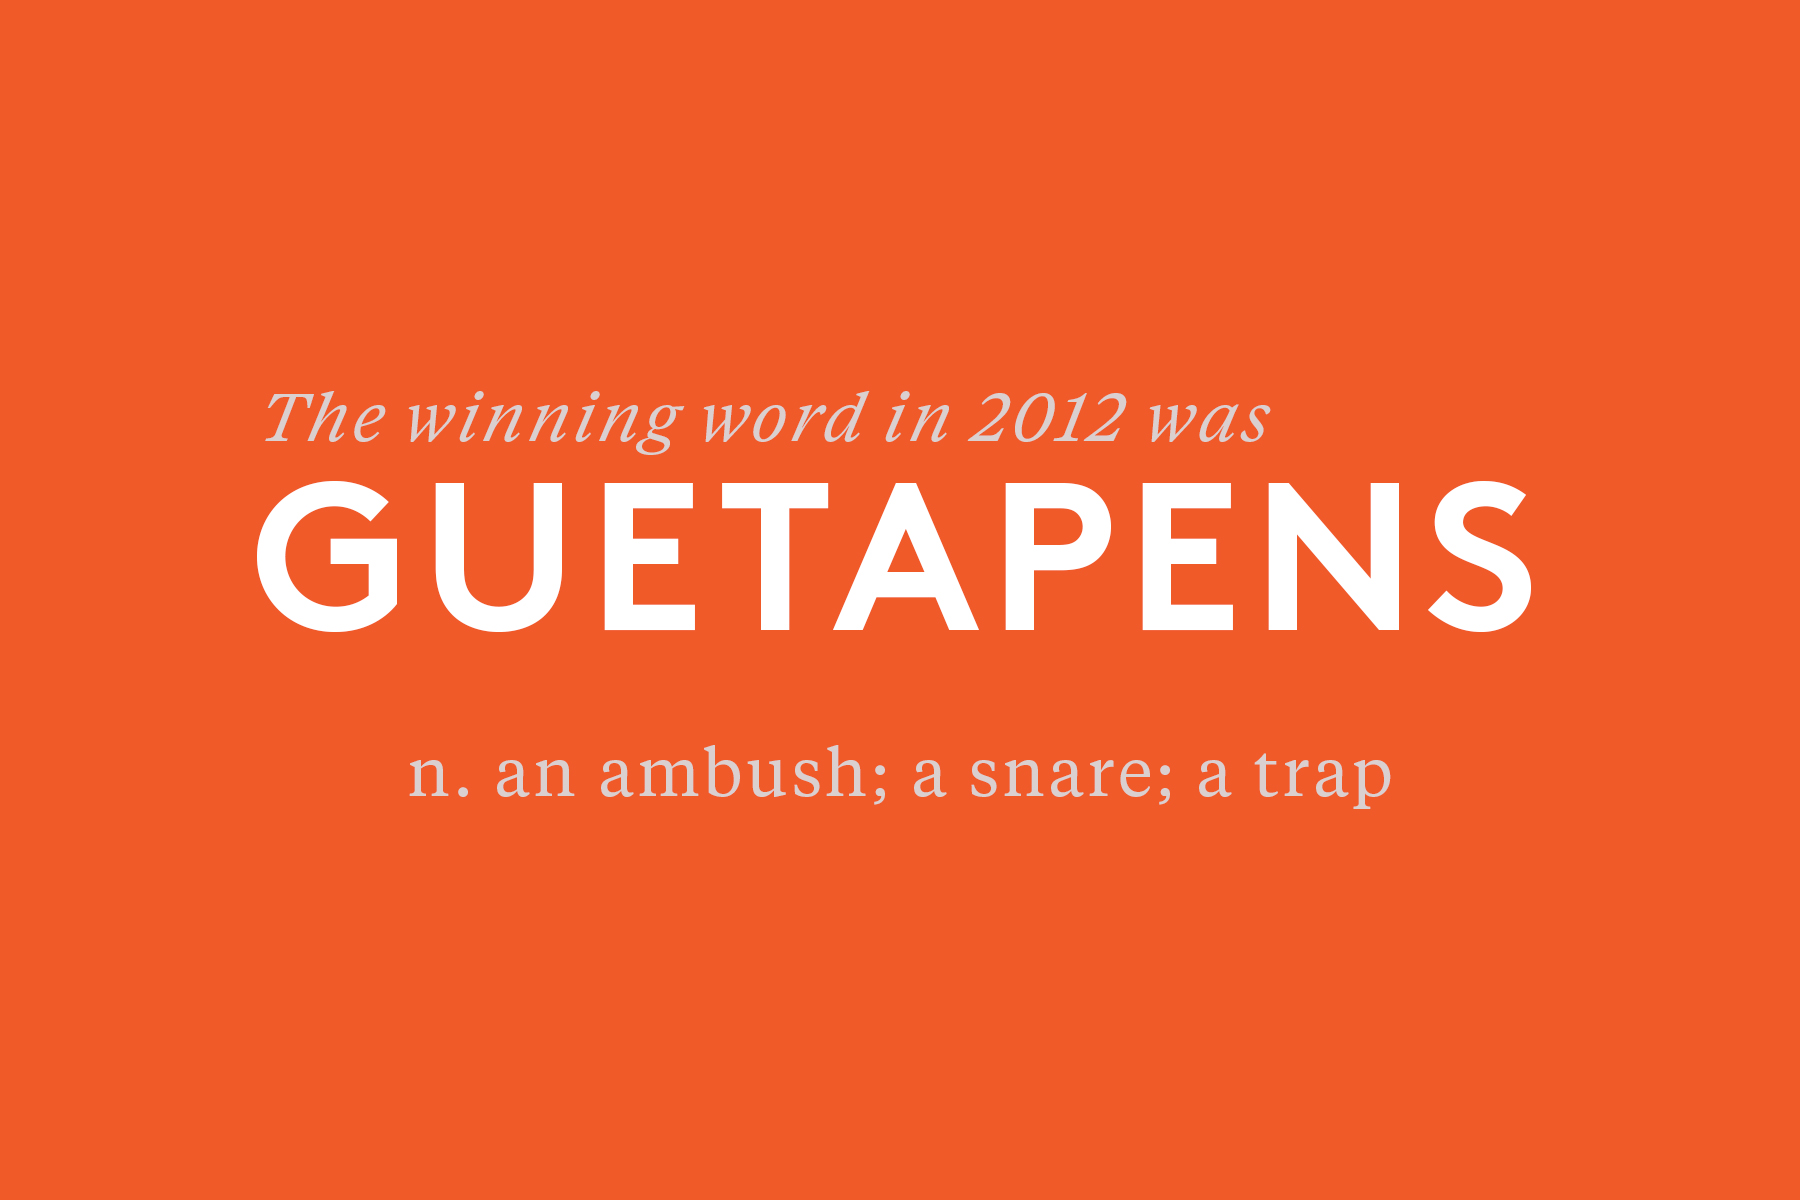 The winning word in 2012 was Guetapens